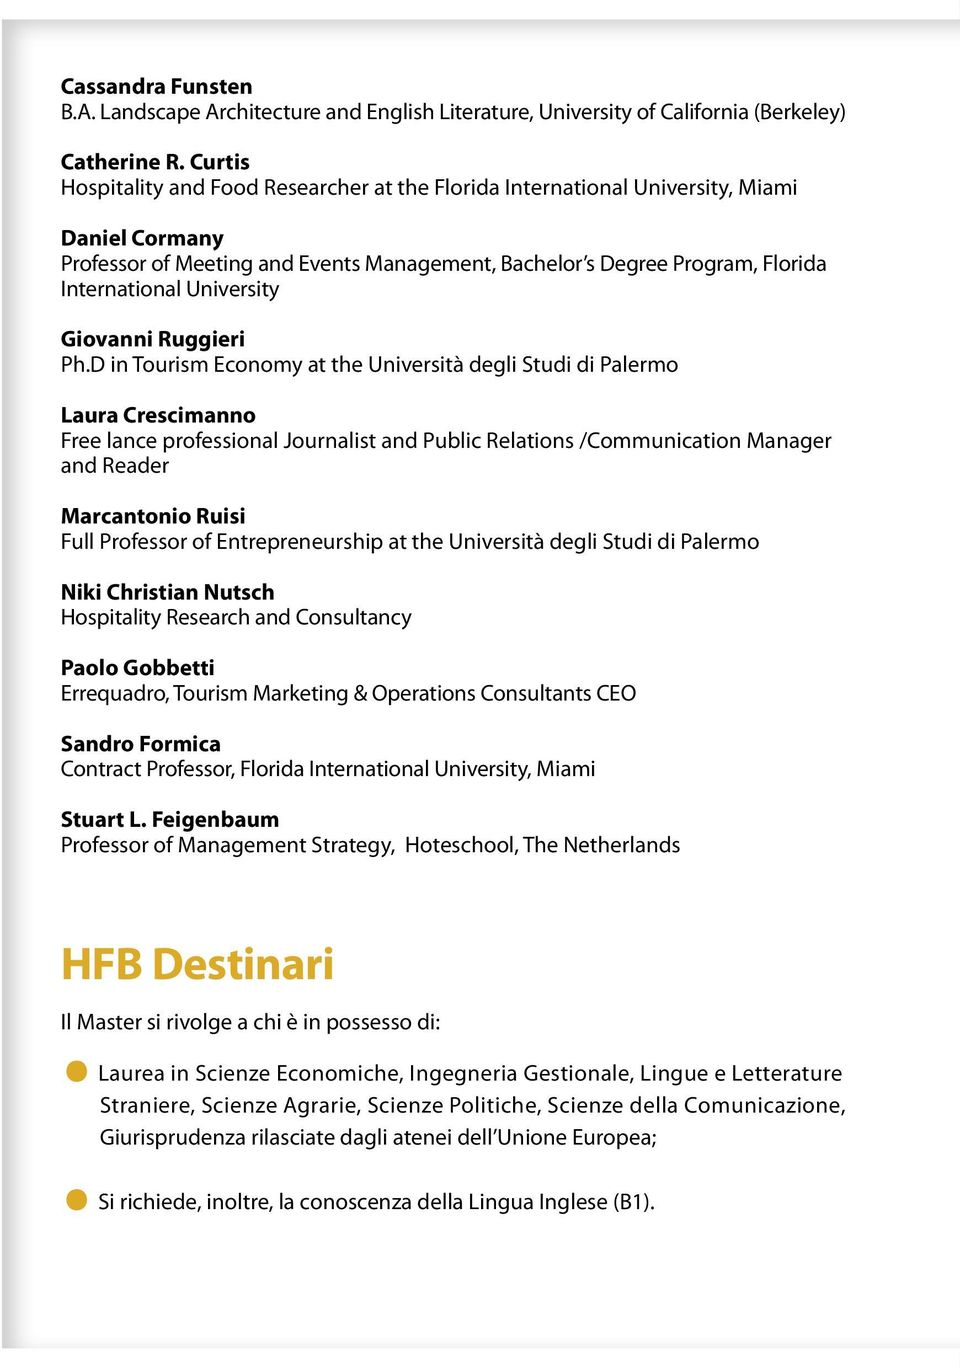 Palermo Laura Crescimanno Free lance professional Journalist and Public Relations /Communication Manager and Reader Marcantonio Ruisi Full Professor of Entrepreneurship at the Università degli Studi